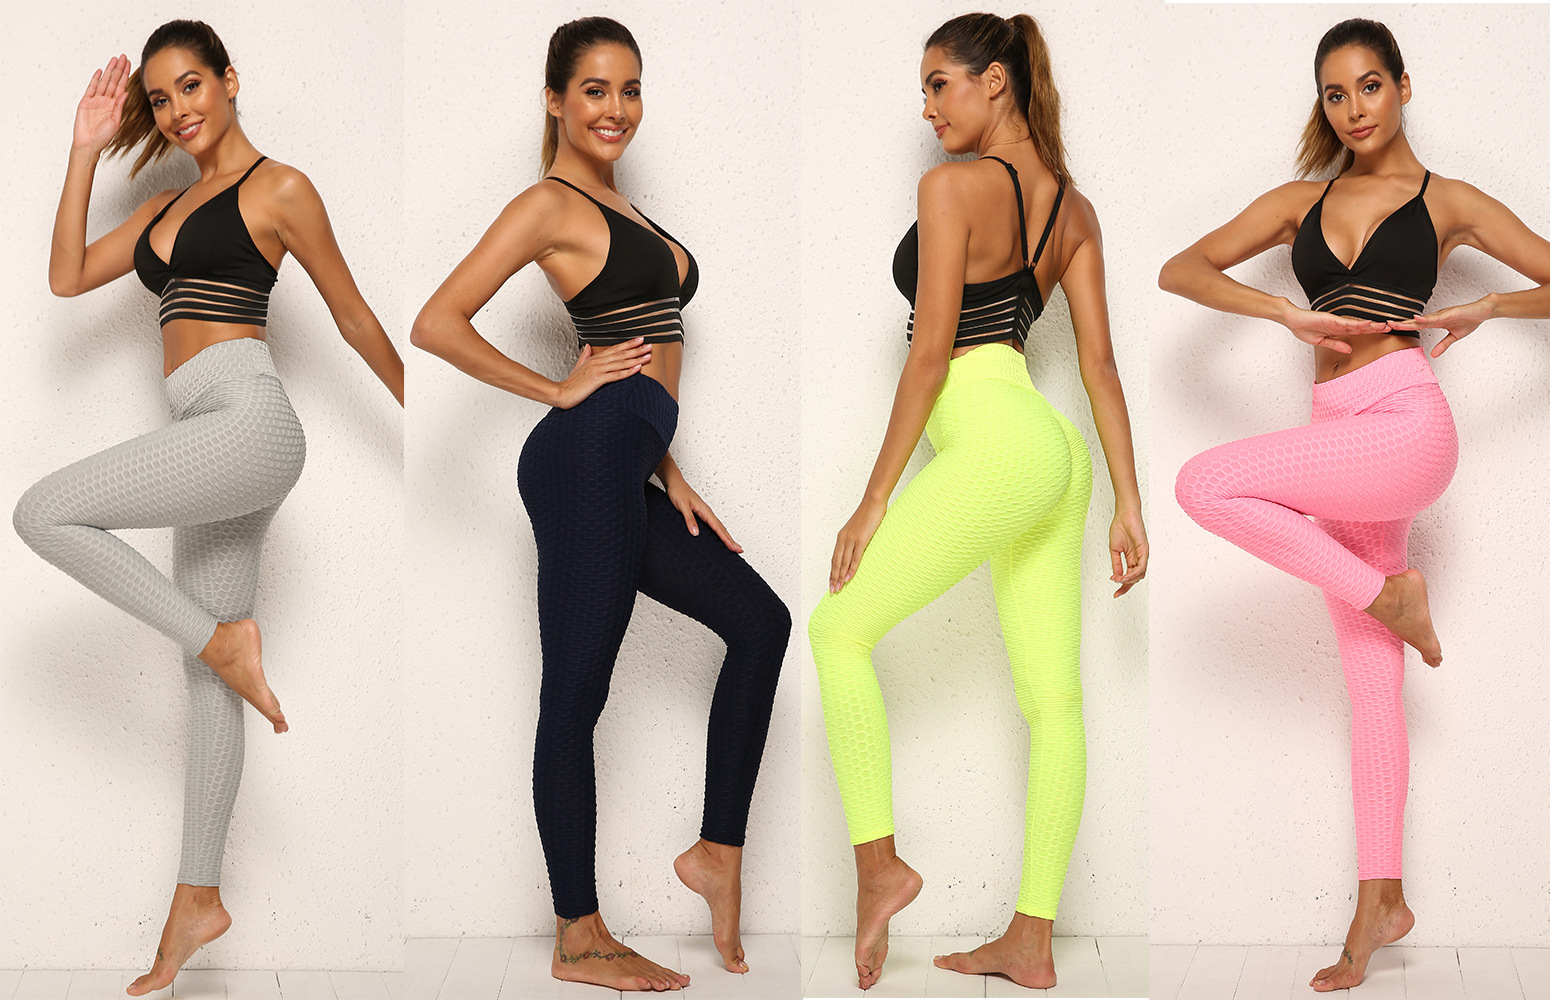 plus size Yoga Pants Women High Wasted Ruched Butt Lift Textured Scrunch Slimming Leggings Workout Tights